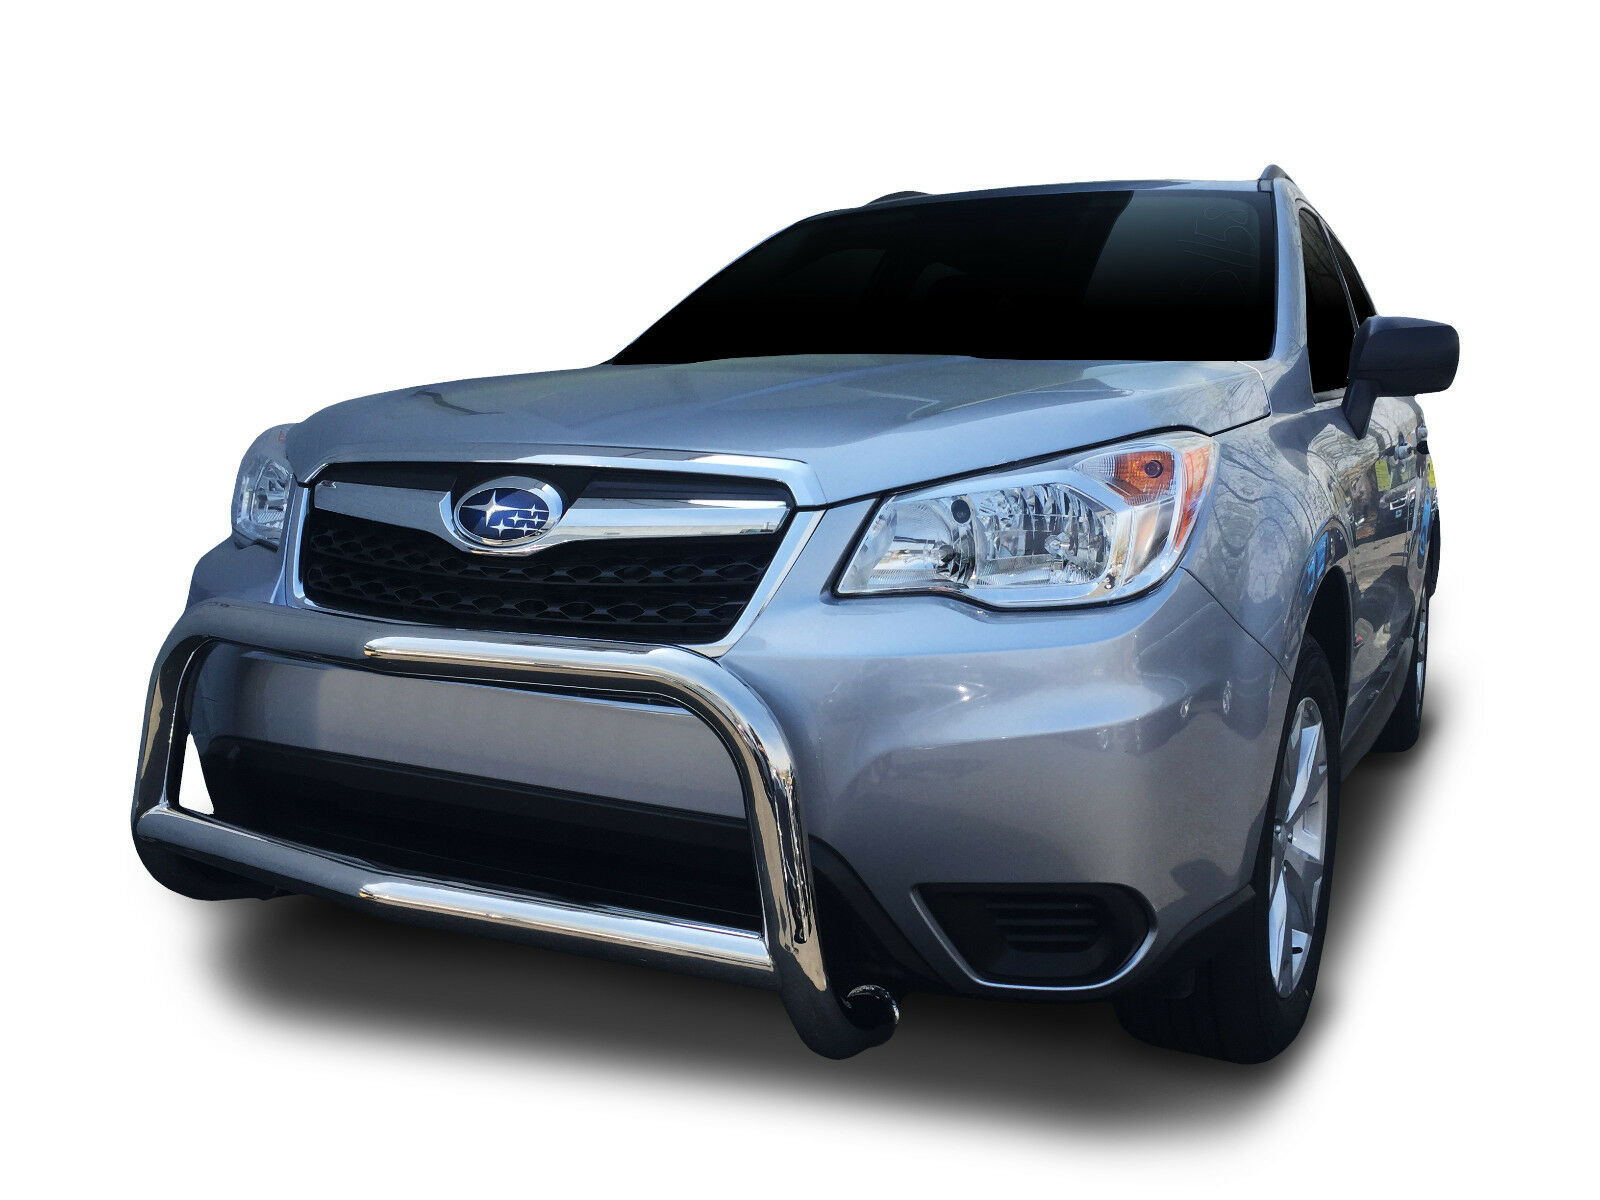 Subaru Warranty 2017 >> Details About Broadfeet A Bar Front Bumper Guard For 2014 2017 Subaru Forester Wide Design